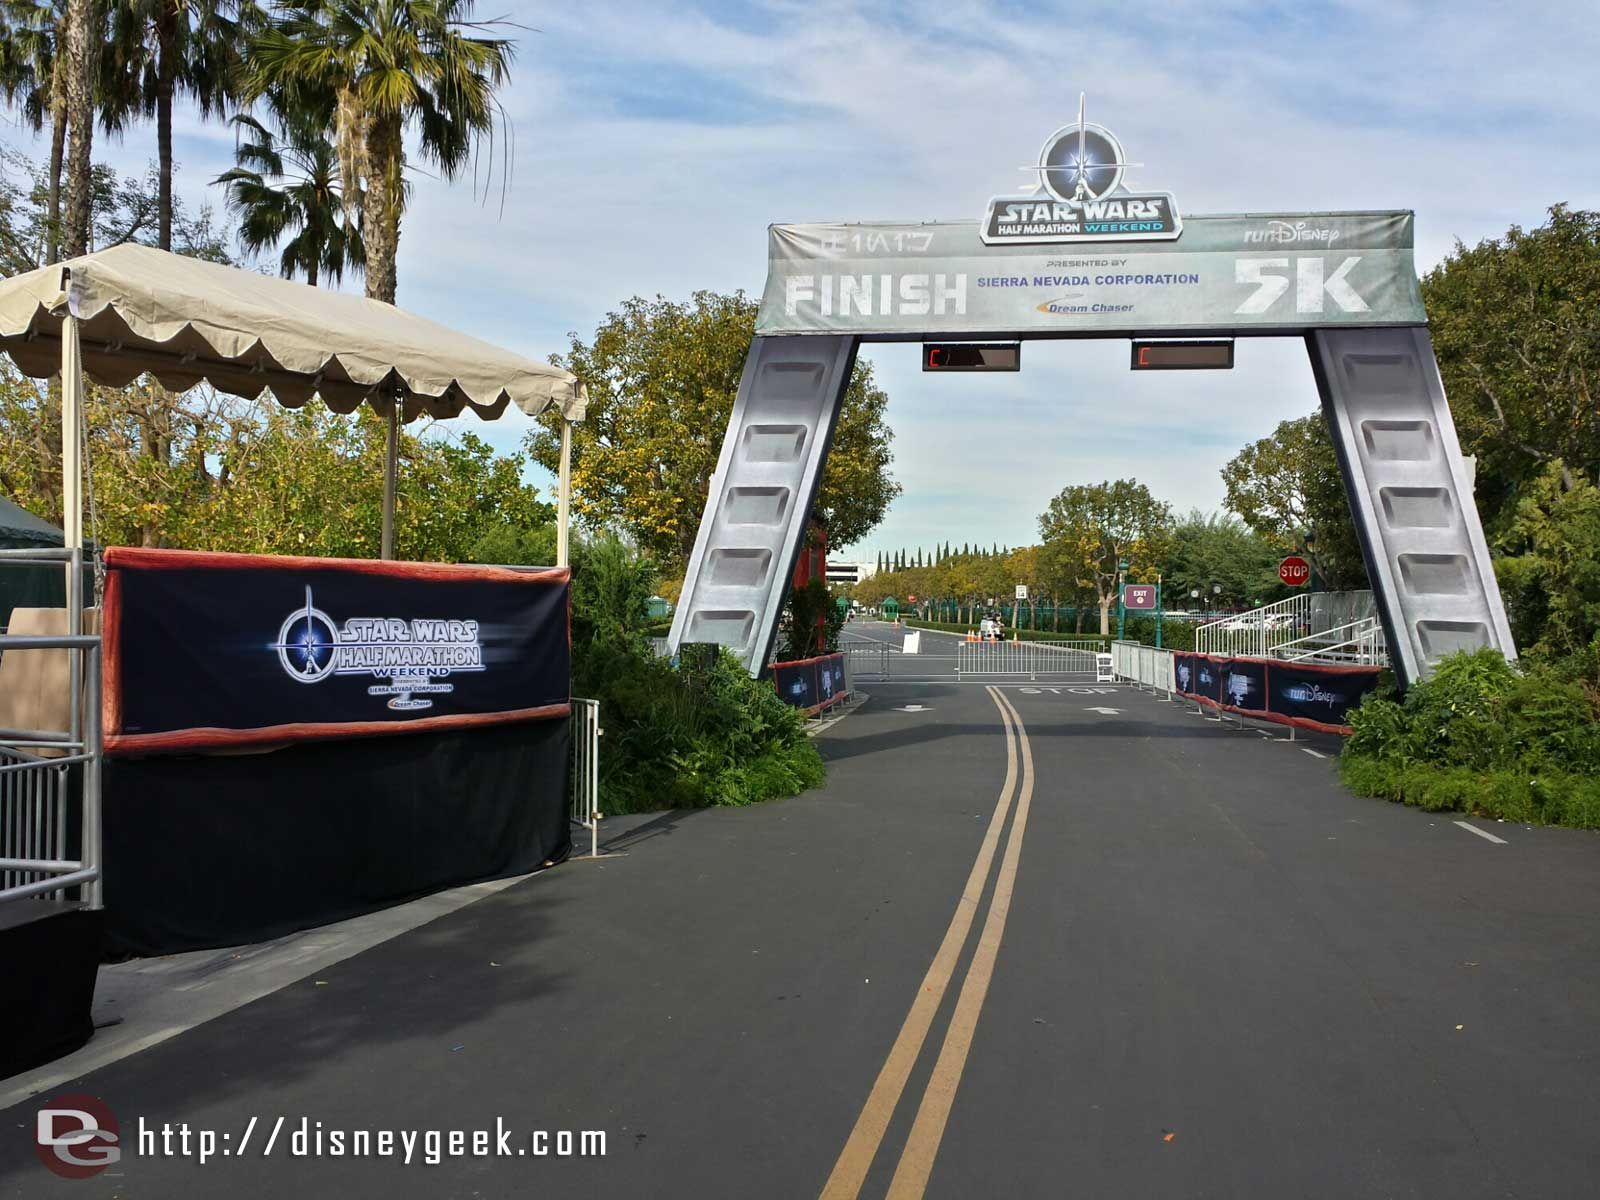 The finish line from the 5k for the Star Wars half marathon weekend #Disneyland